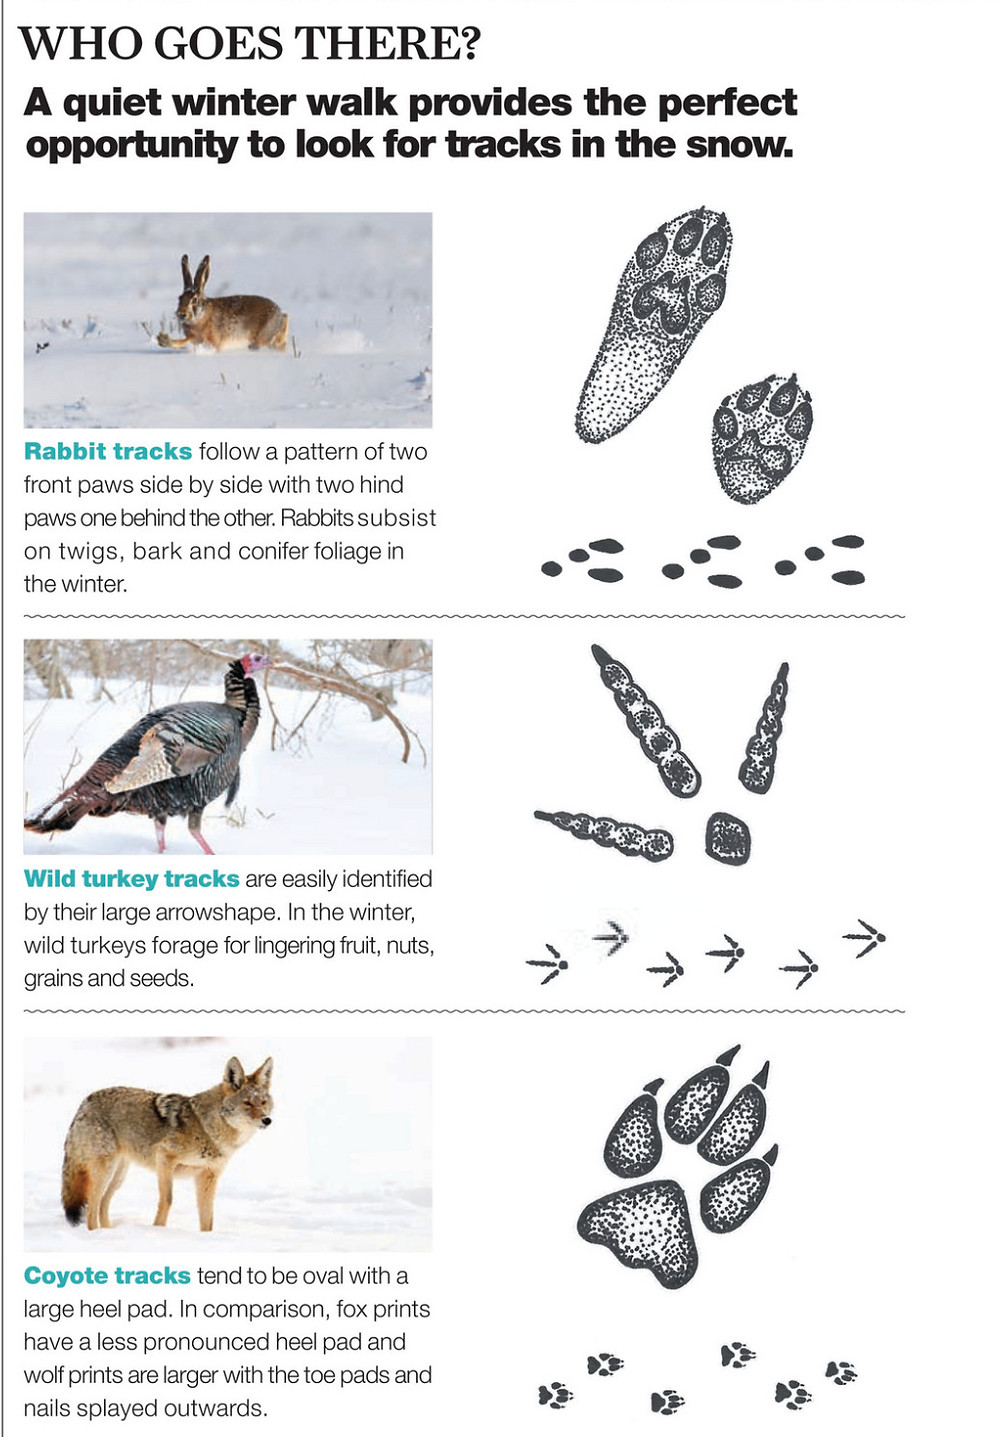 Identifying animal tracks in the snow with Nature Conservancy Canada Tracking Guide in Haliburton